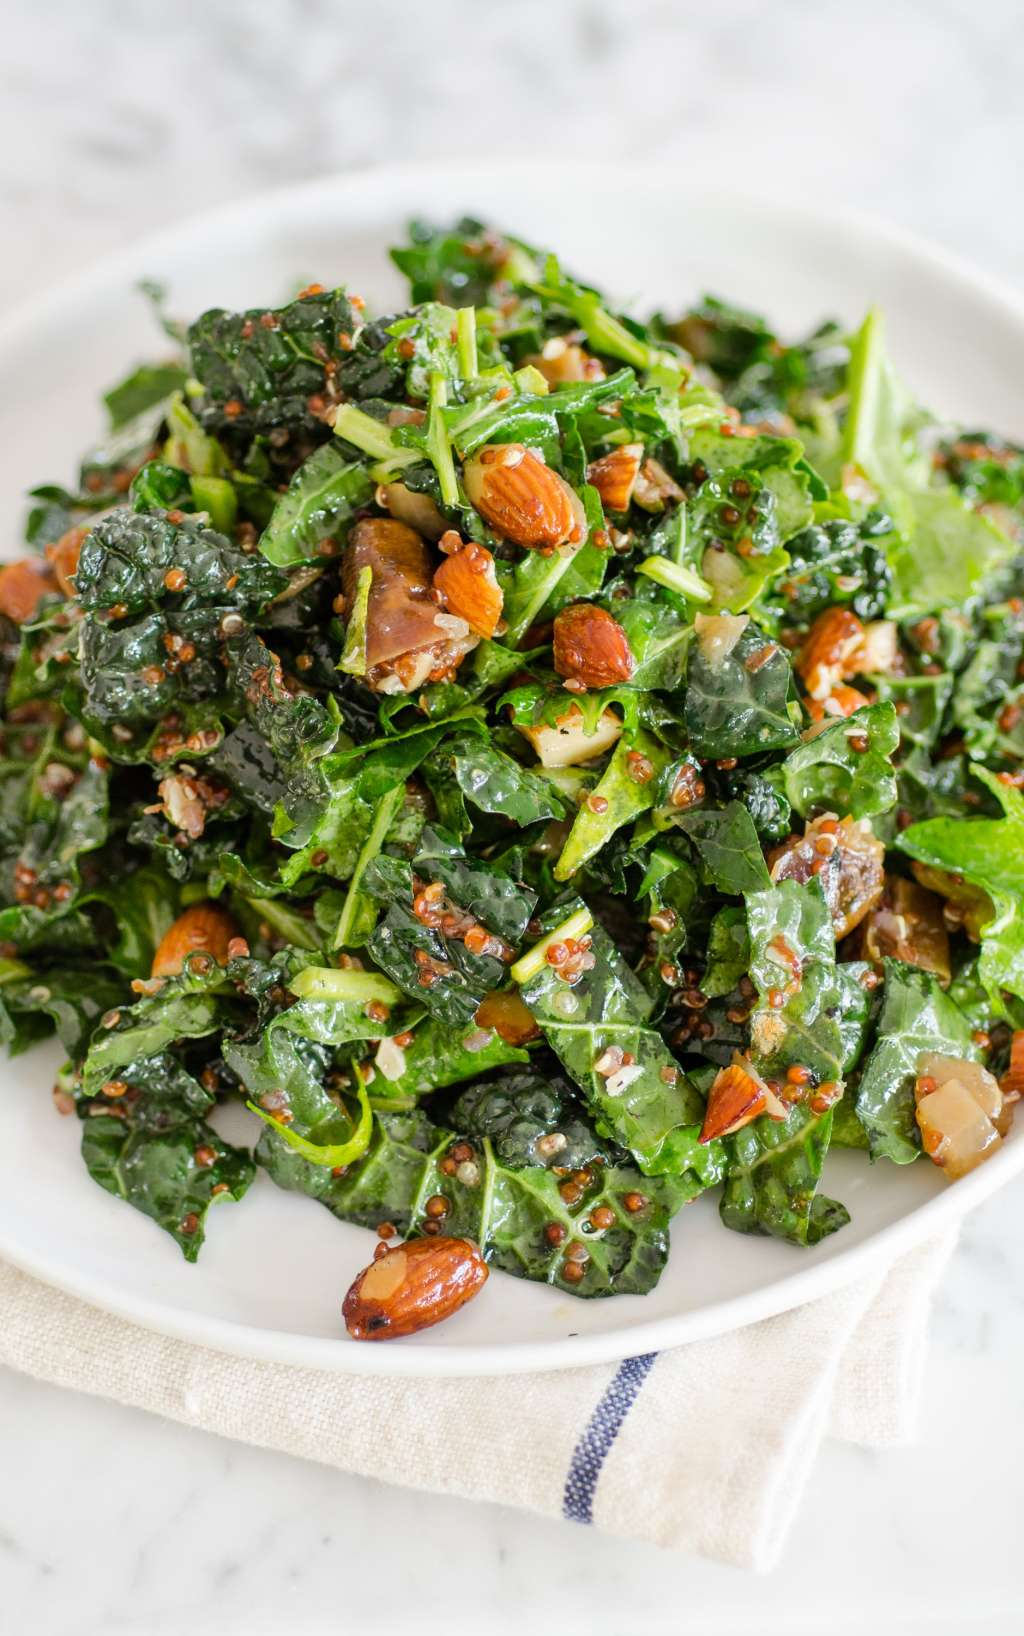 10 of Our All-Time Favorite Kale Salad Recipes